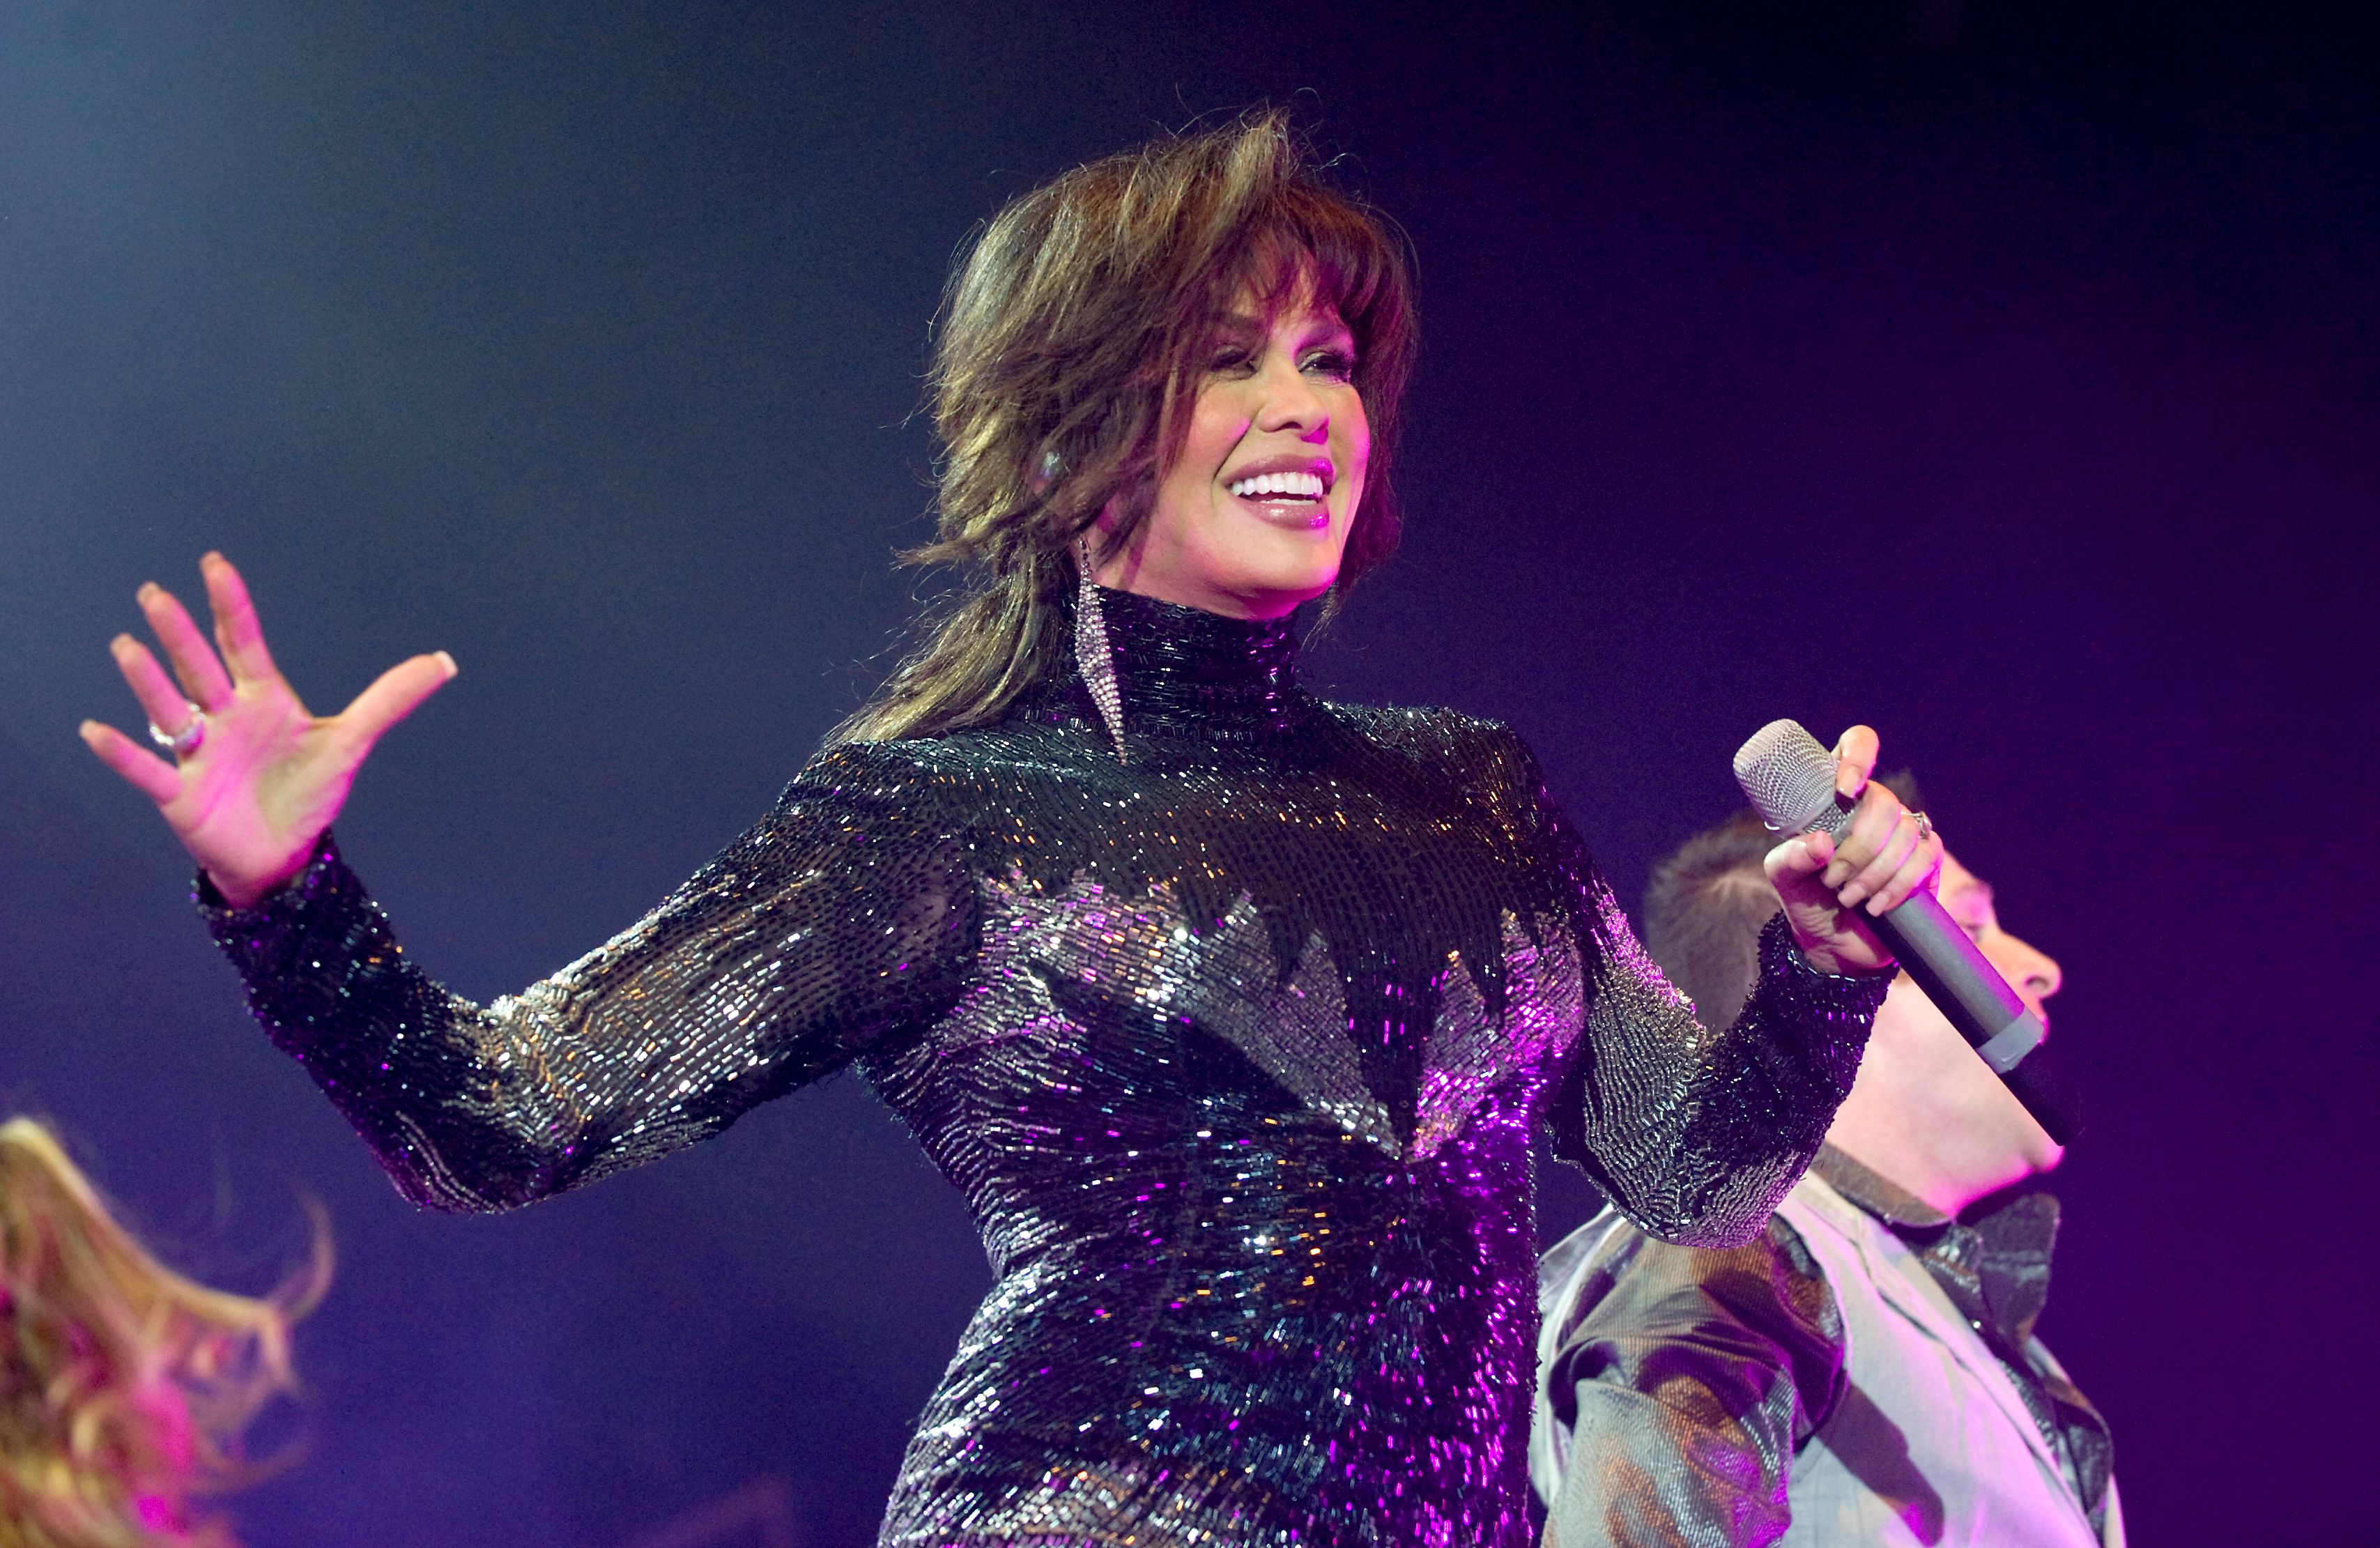 Marie Osmond Busts Out Her M-Shaped Guitar to Play a 'Honky-Tonk' Version of 'Jingle Bell Rock'